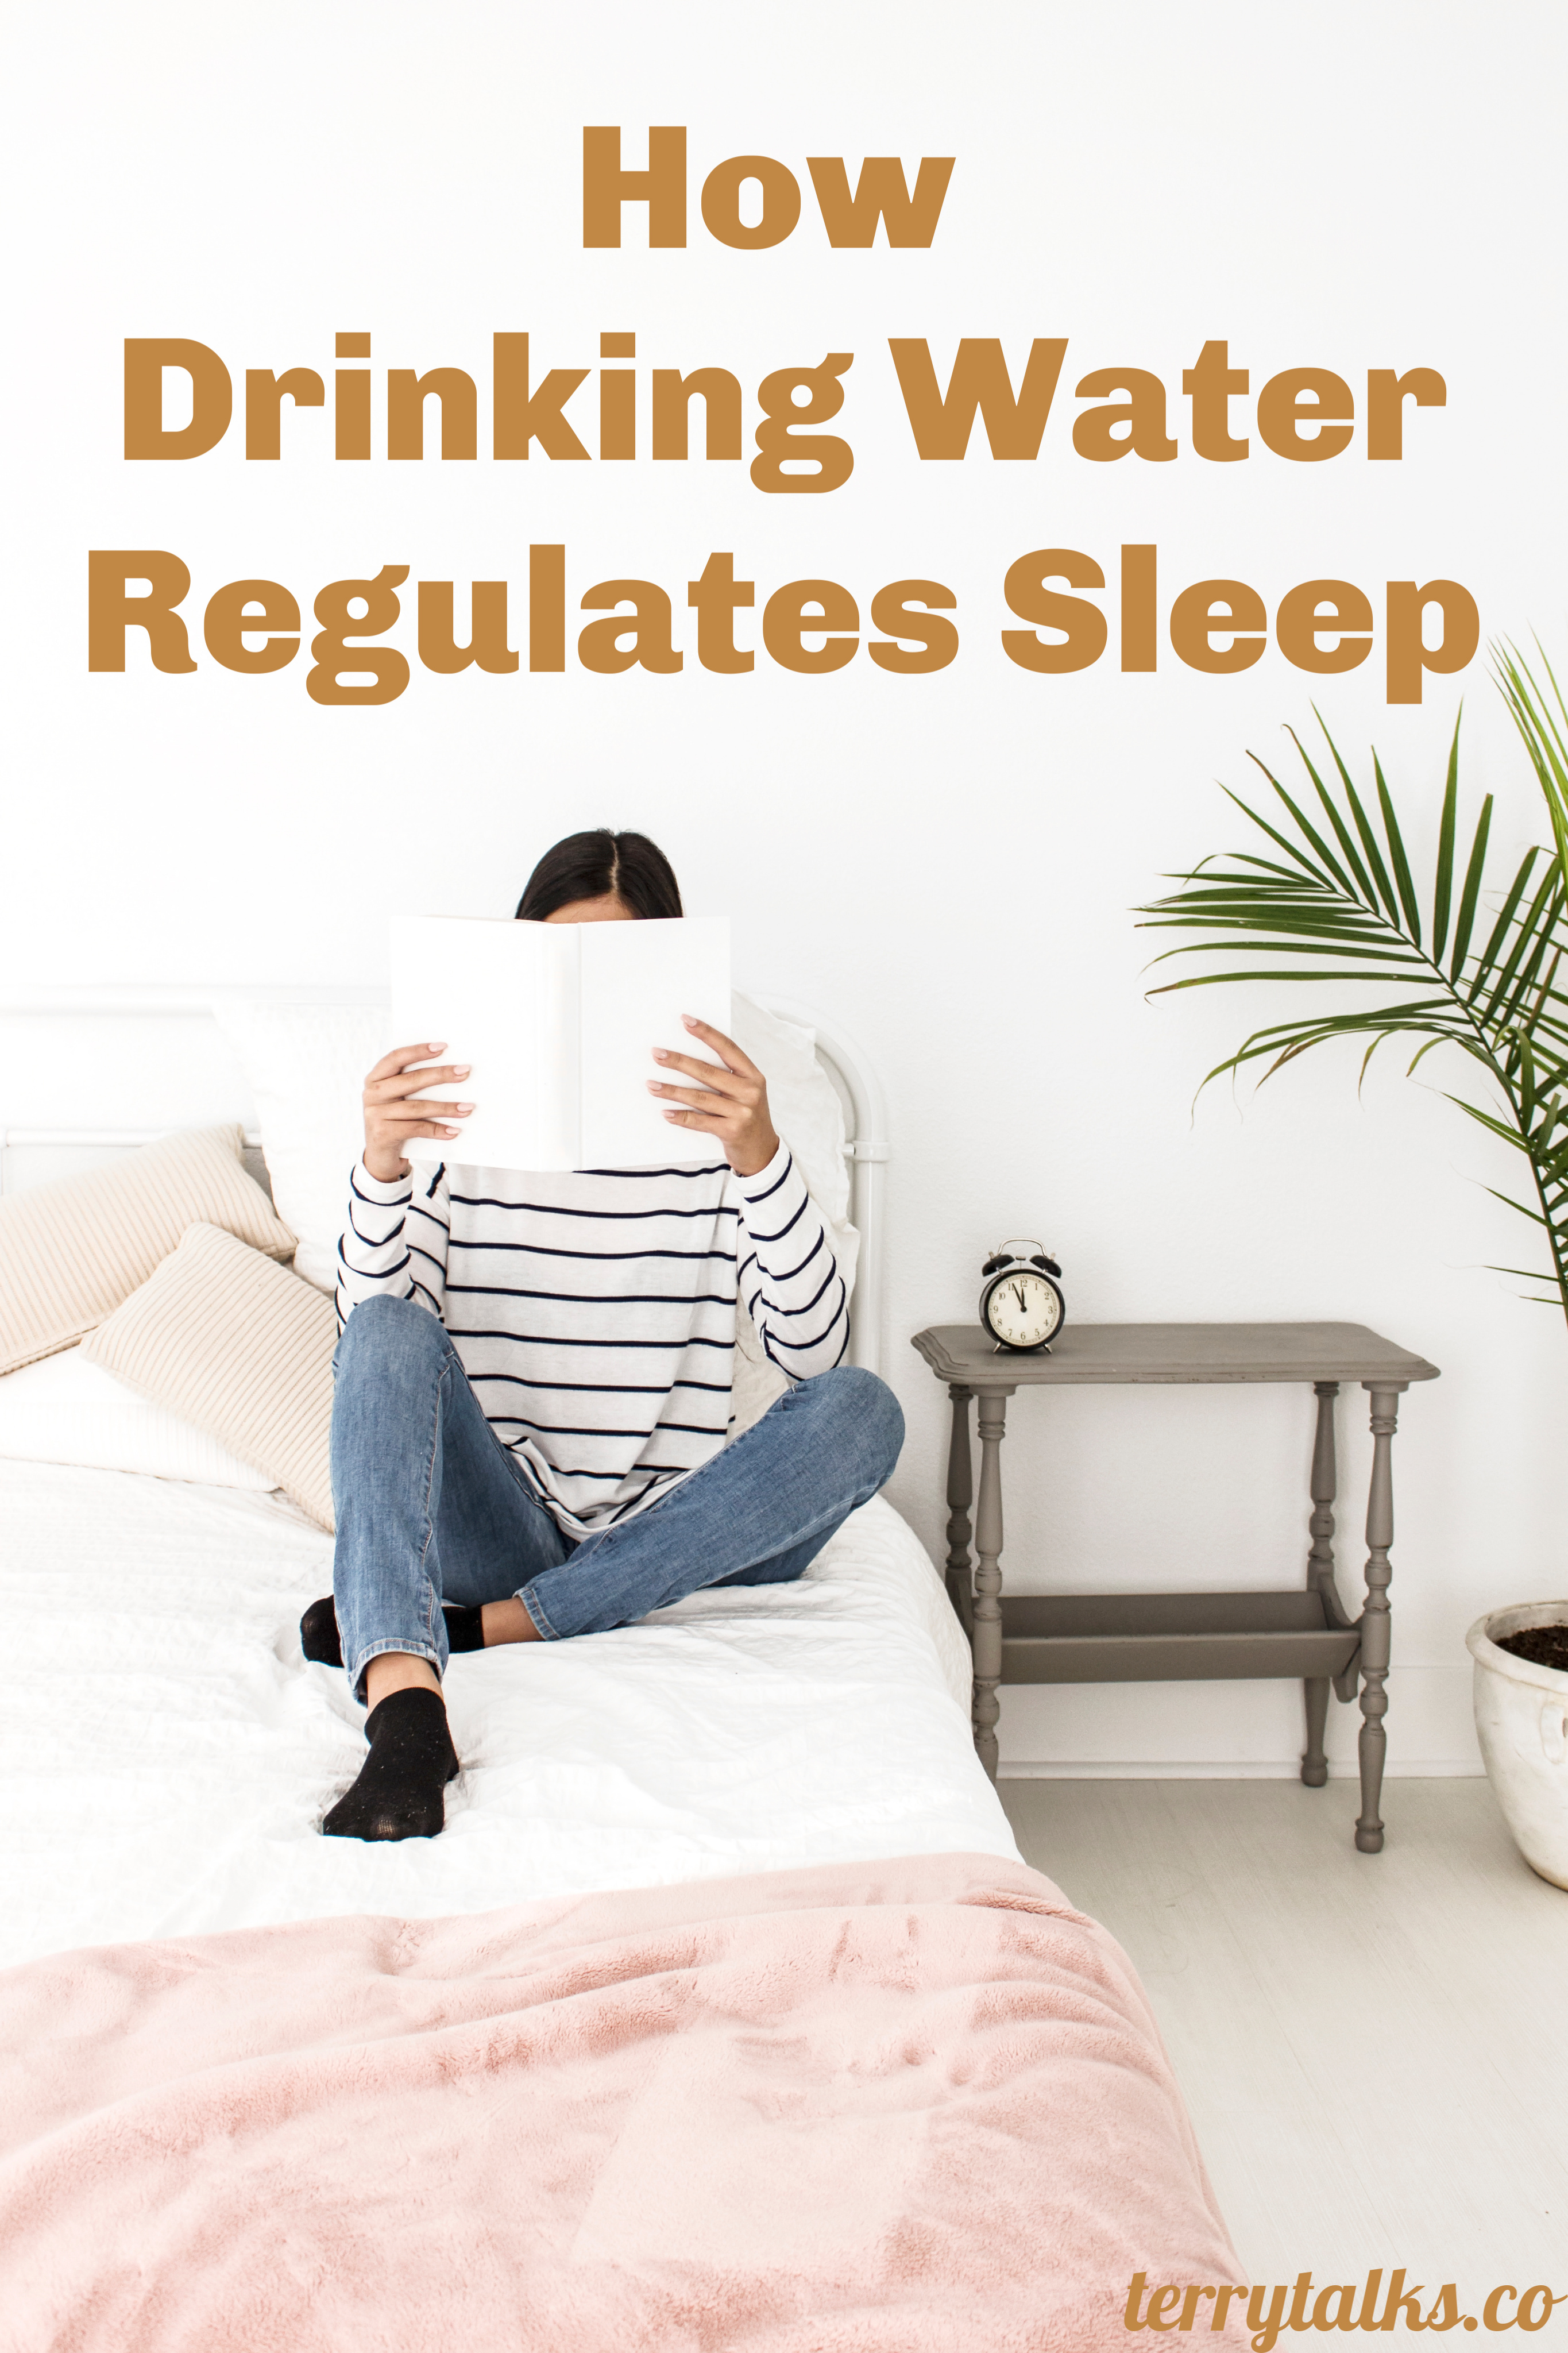 How Drinking Water Regulates Sleep